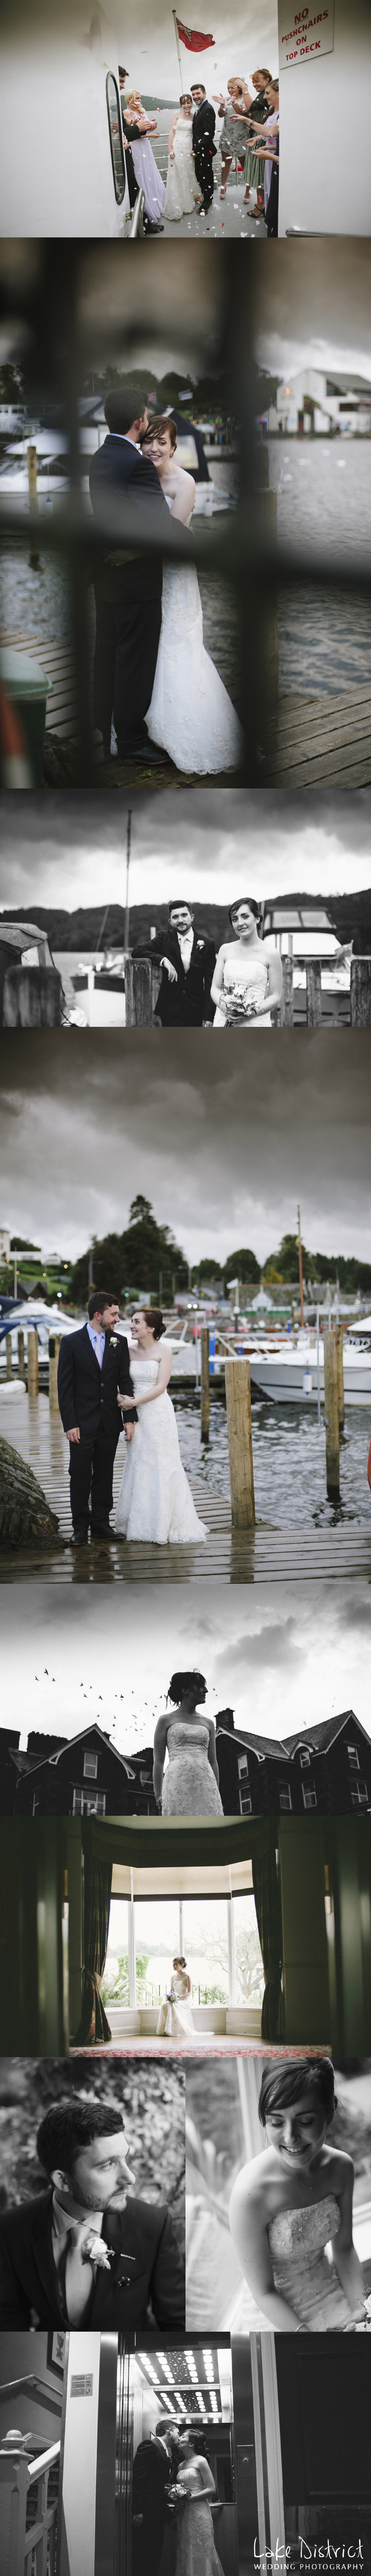 Staggering pictures of a wedding from the Windermere marina wedding